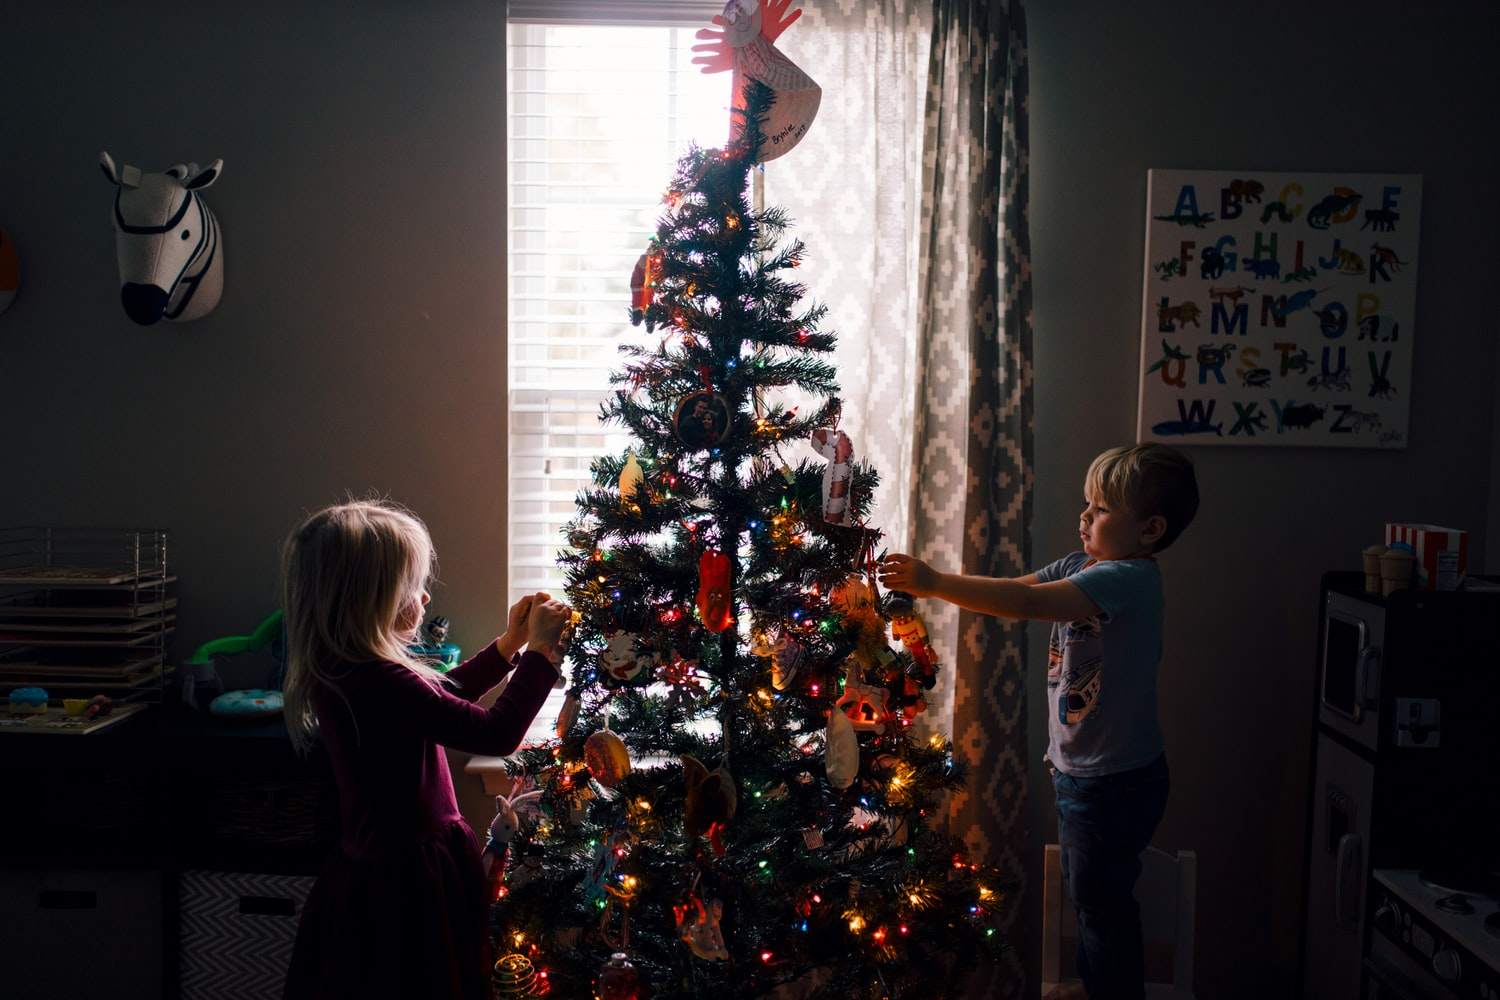 Looking for new kid-friendly traditions to adopt this holiday season? We have 12 cool ideas that are sure to bring on the holiday spirit and start your countdown to Christmas 2020.